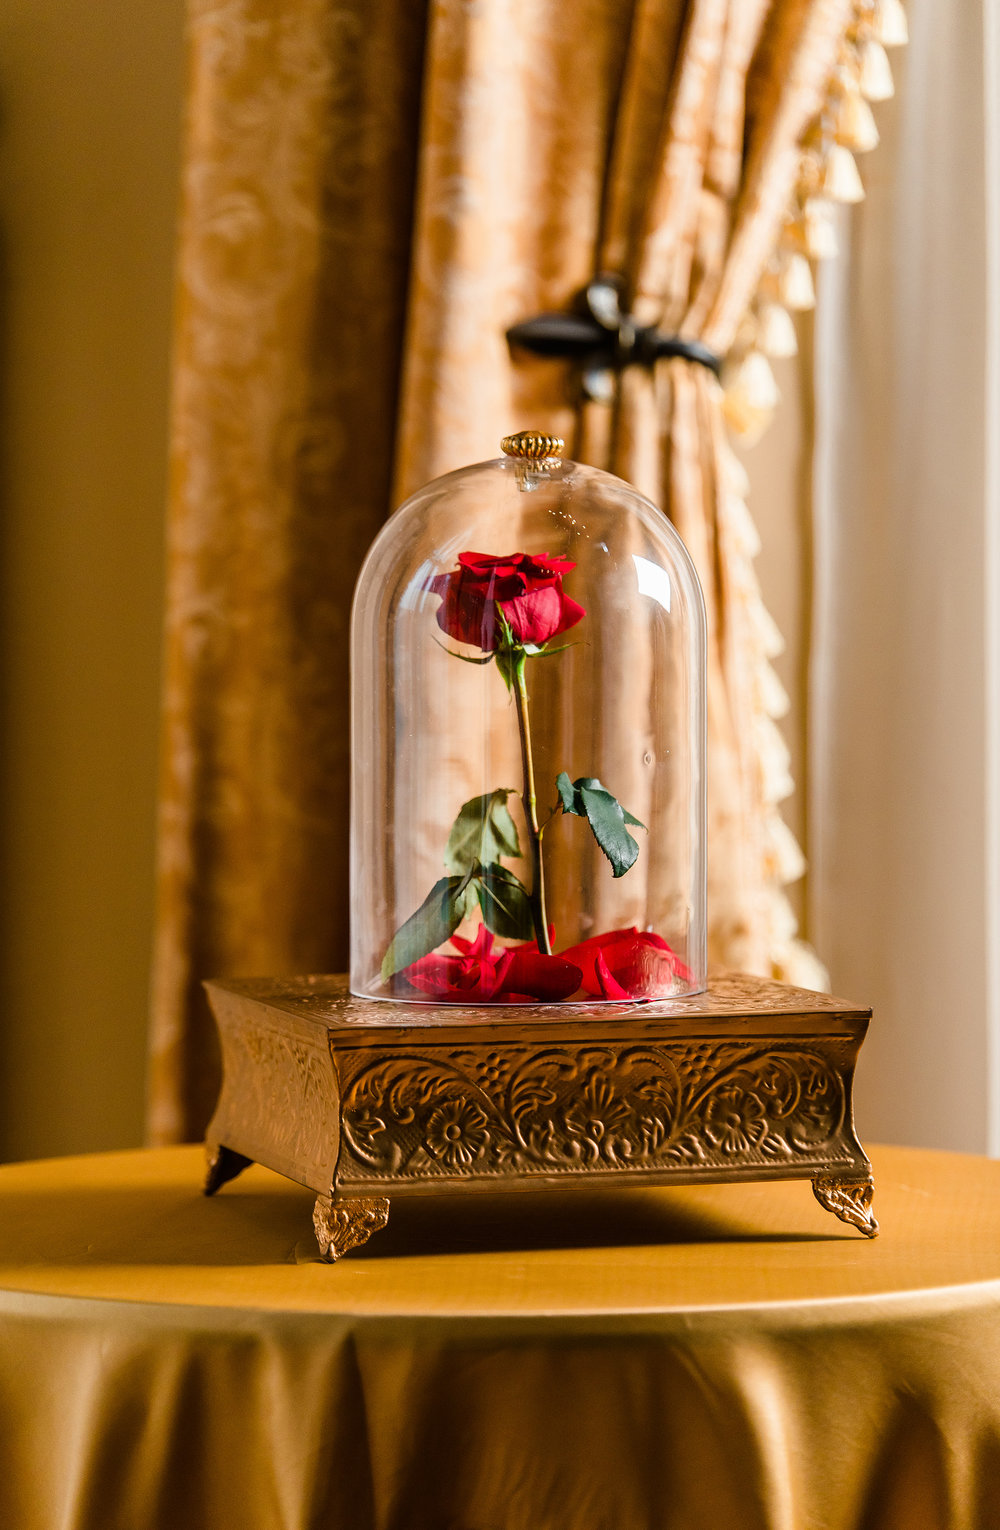 Beauty and the Beast Wedding Be Our Guest: 47 Enchanting Beauty and the Beast Themed Wedding Ideas